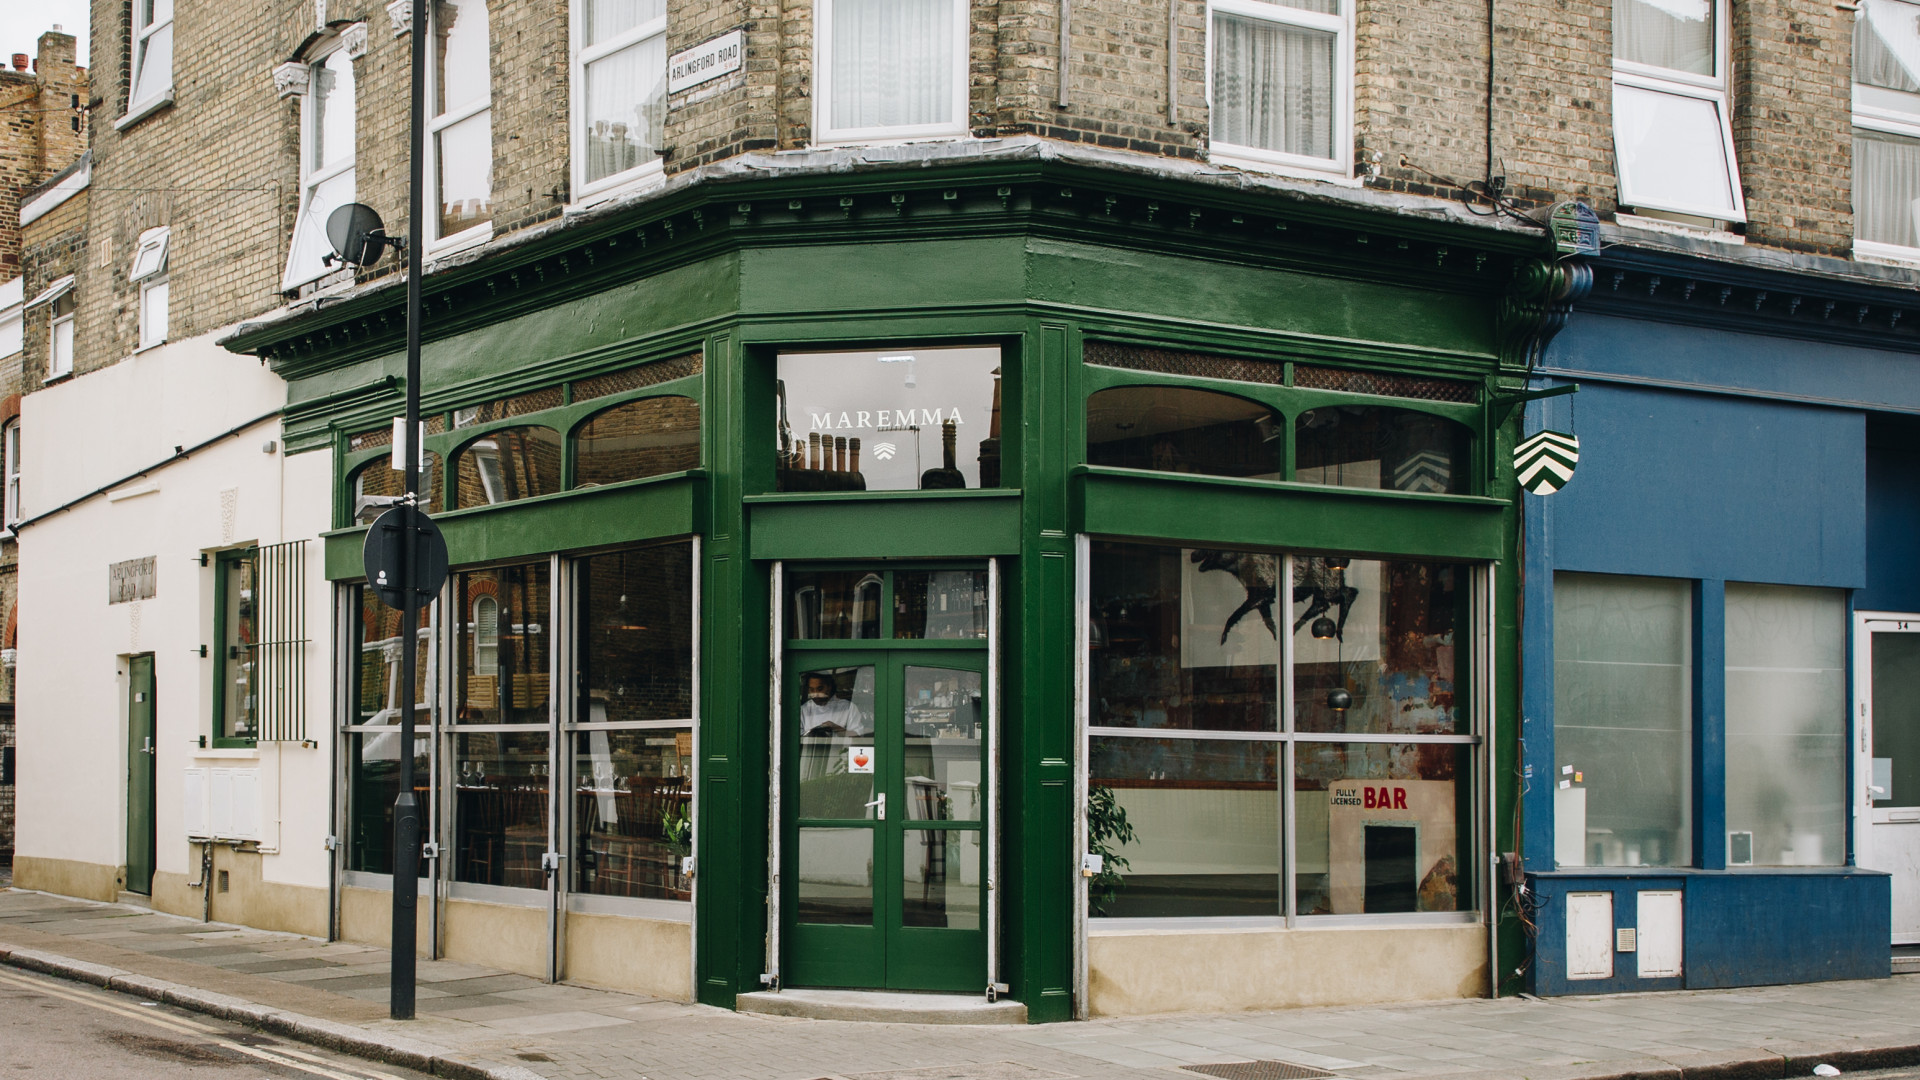 Maremma, Brixton: the restaurant on Watergate Lane